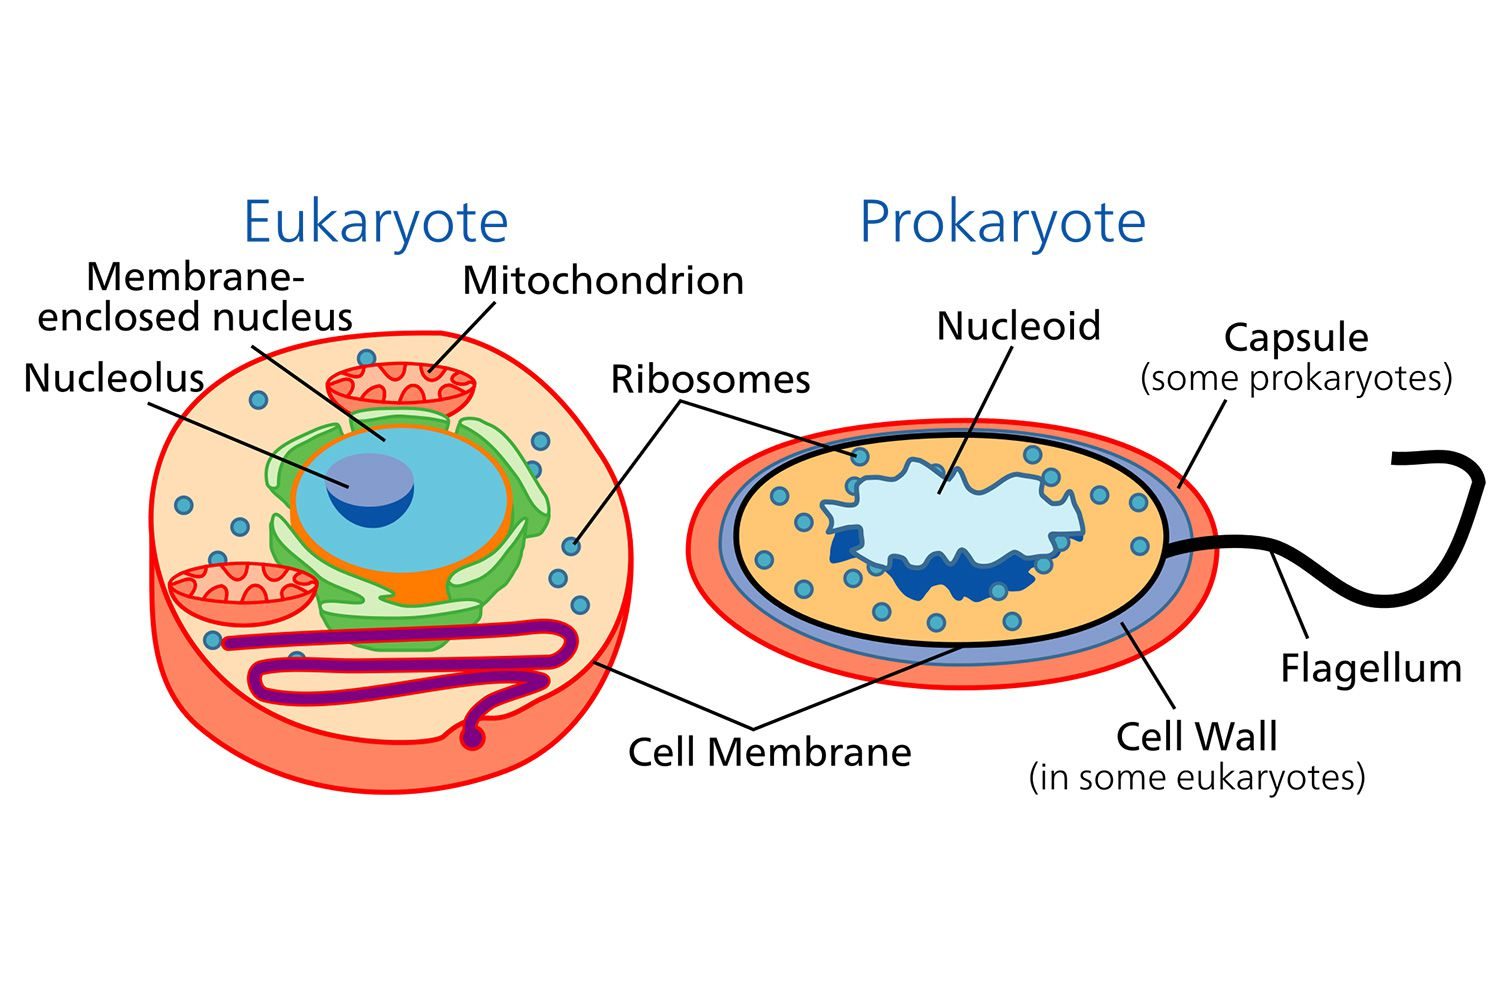 Cell Prok Ryotic Nd Euk Ryotic Cells